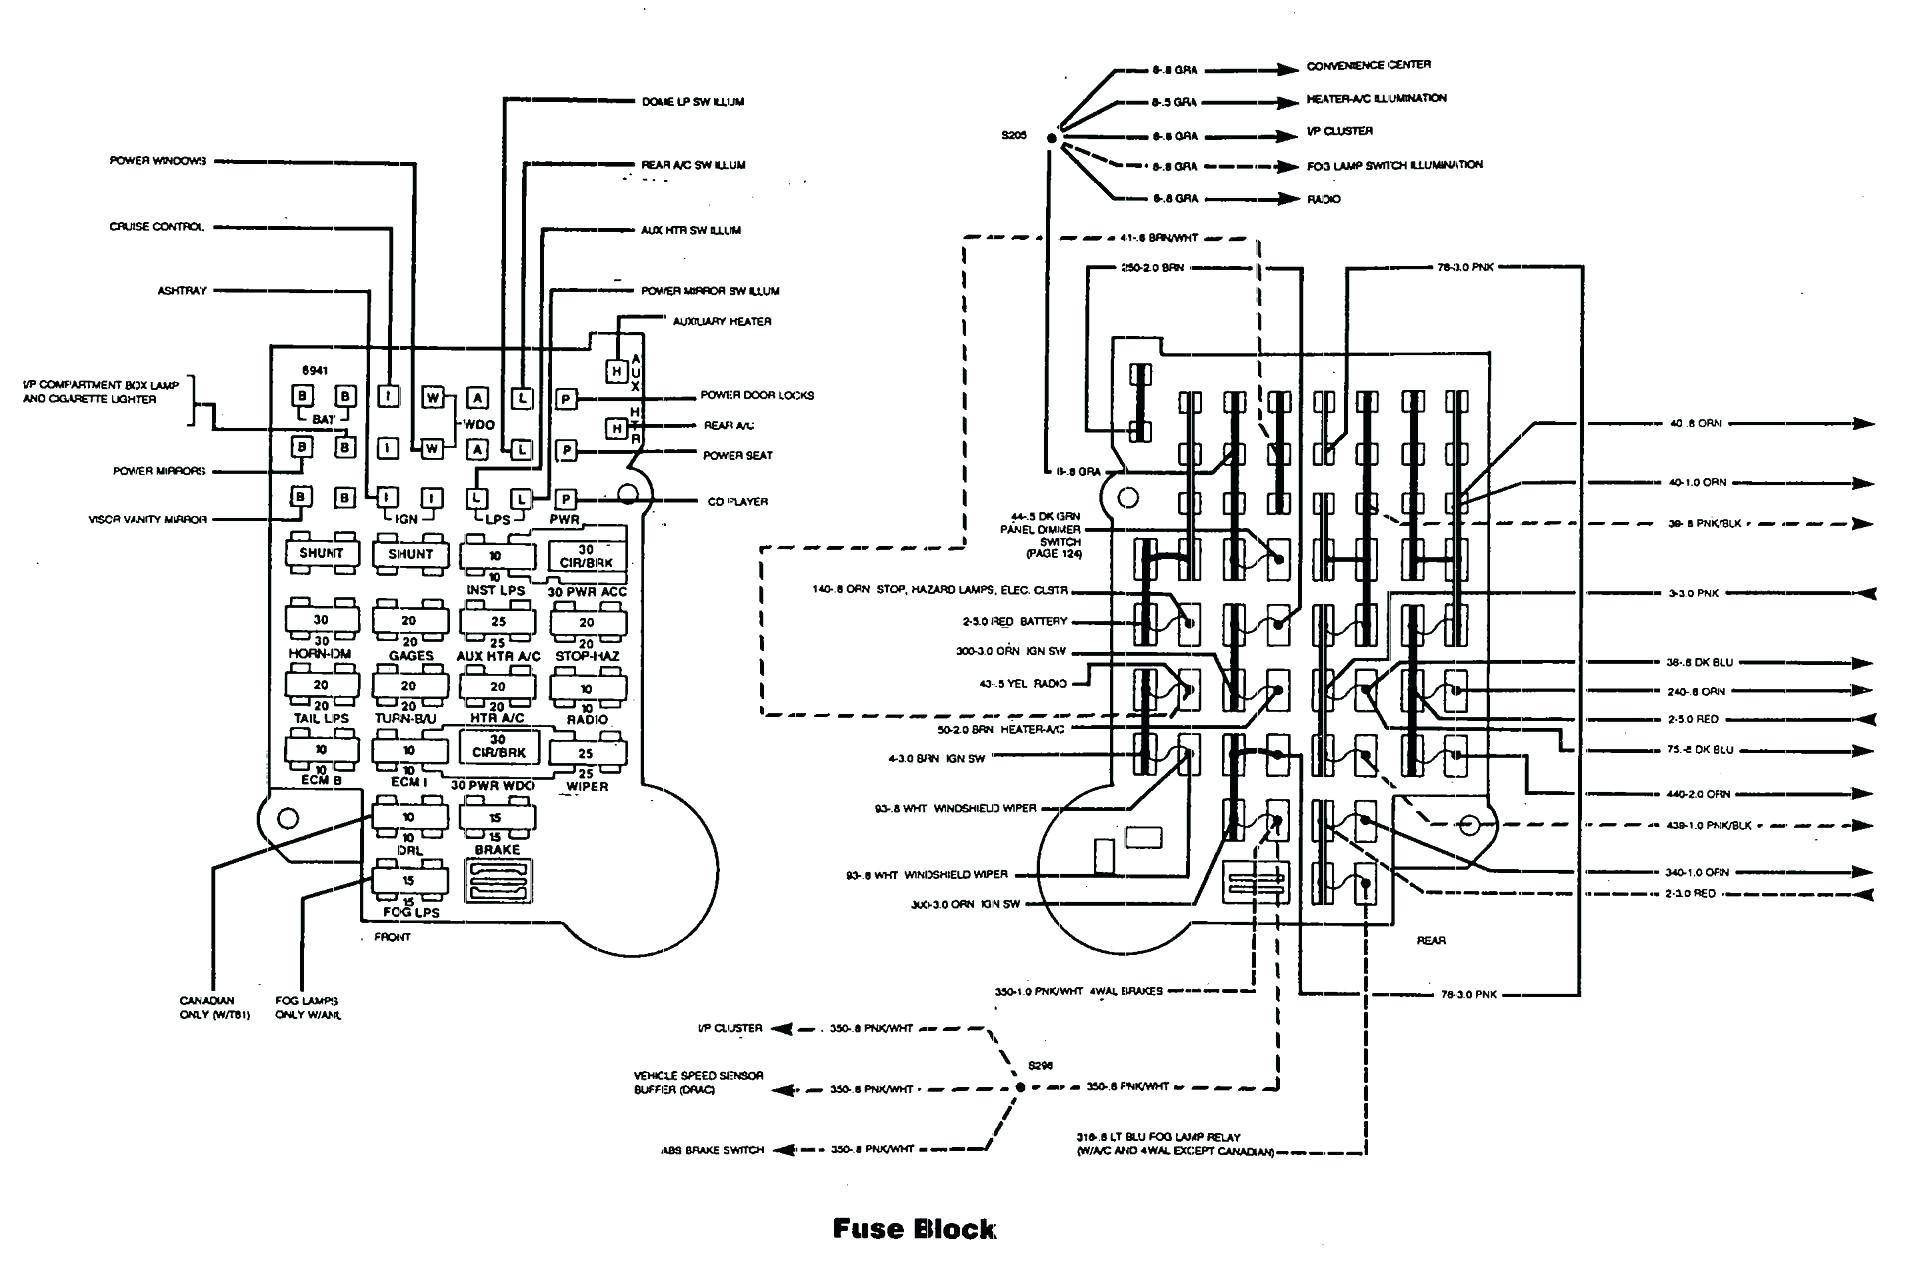 1999 Pontiac Grand Am Engine Diagram Wiring Library 2000 1998 Prix Data Of